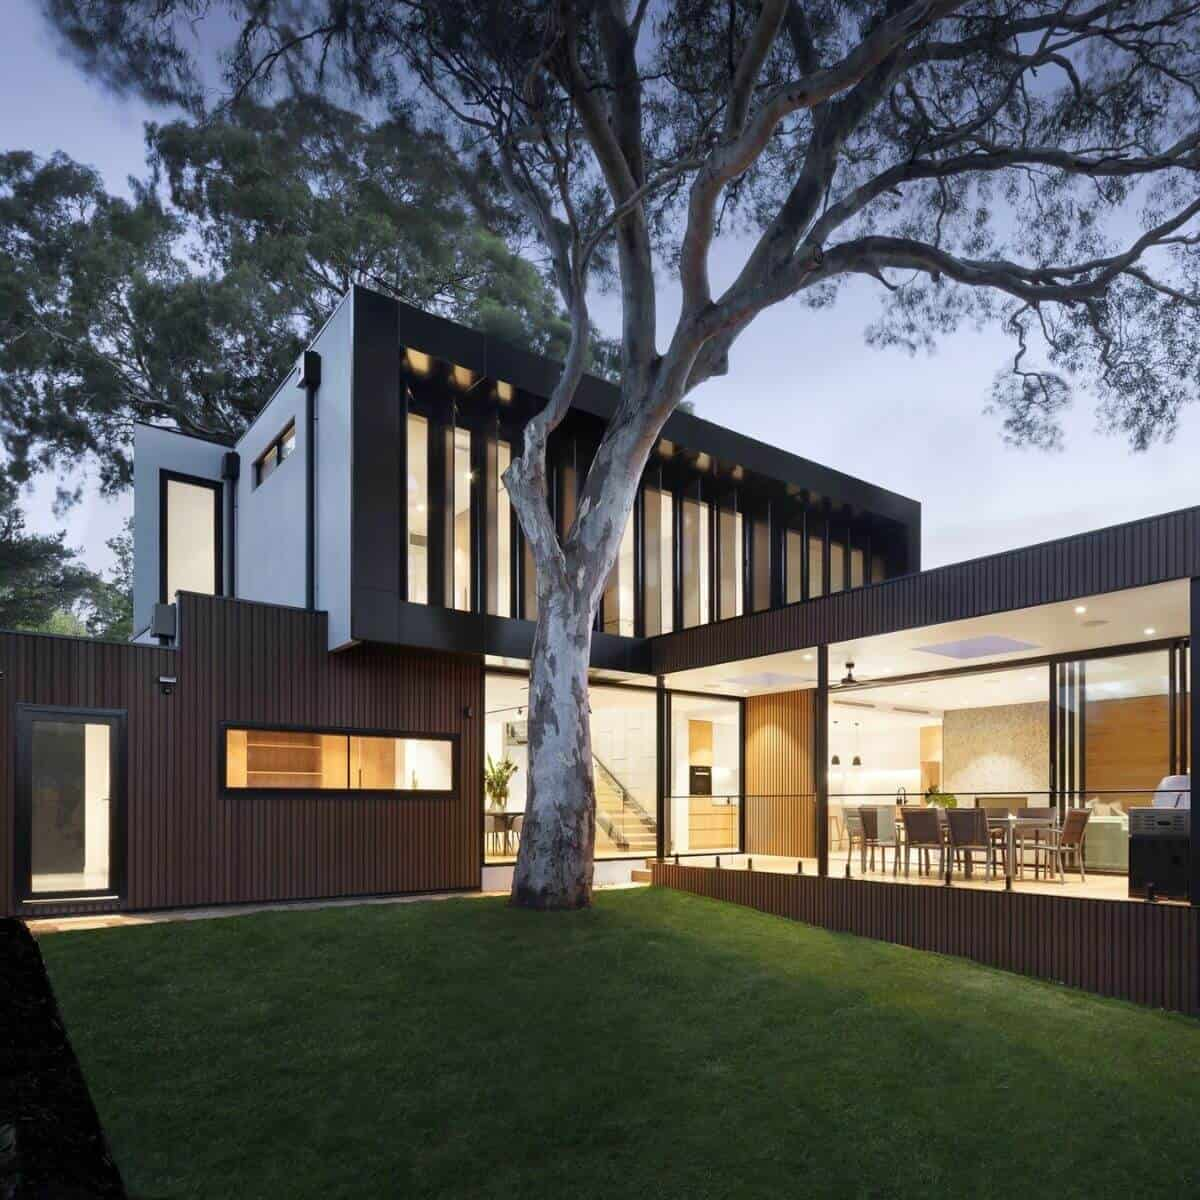 Black and wood modern mansion with a tree in front of it.